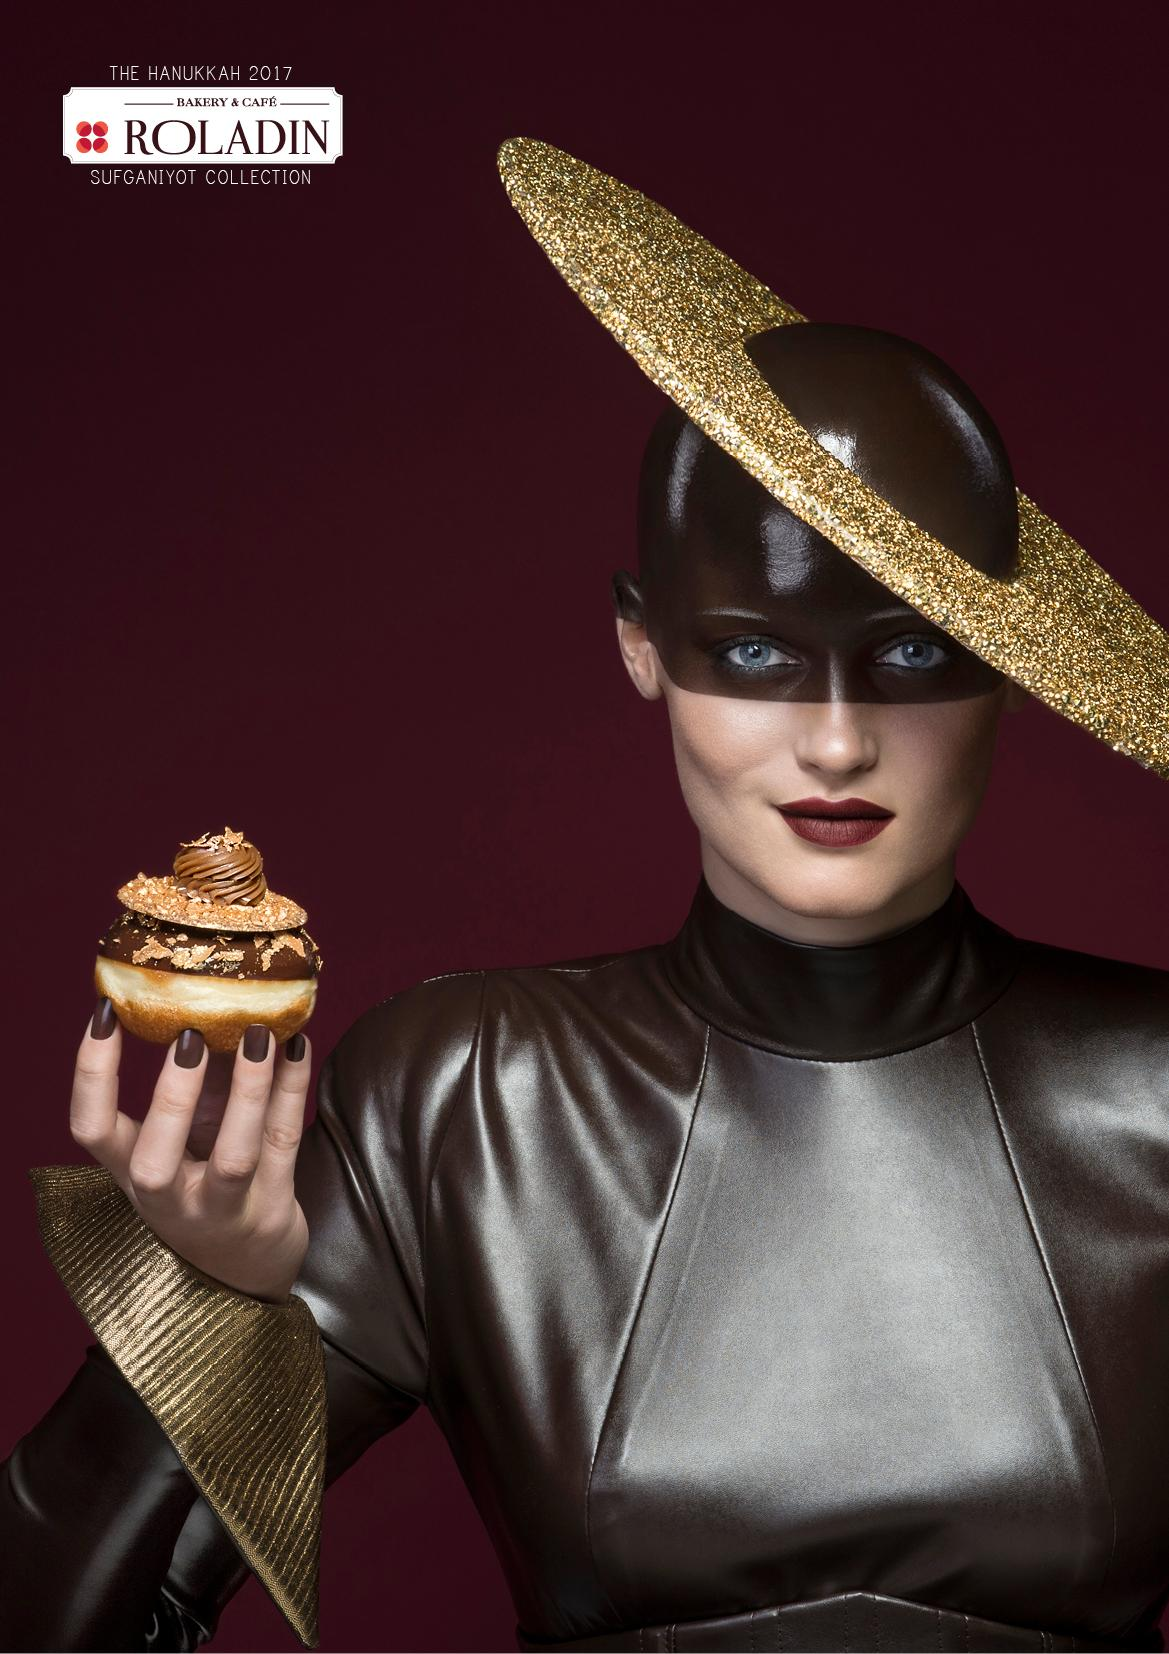 Roladin Print Ad - 2017 Sufganiyot Collection - Gold